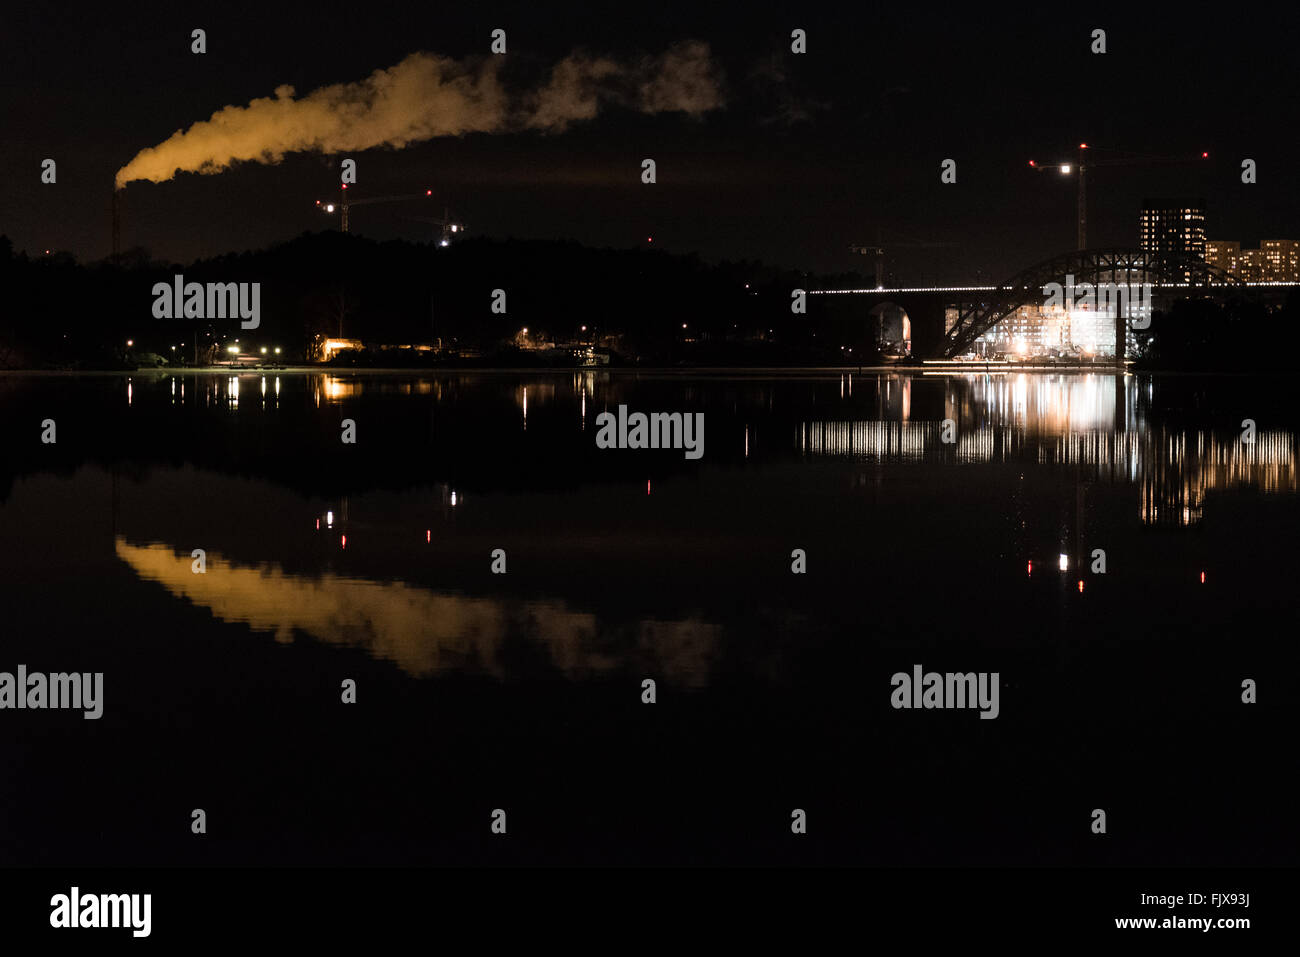 Smoke Stack Emitting Pollution With Reflection In River Against Sky - Stock Image